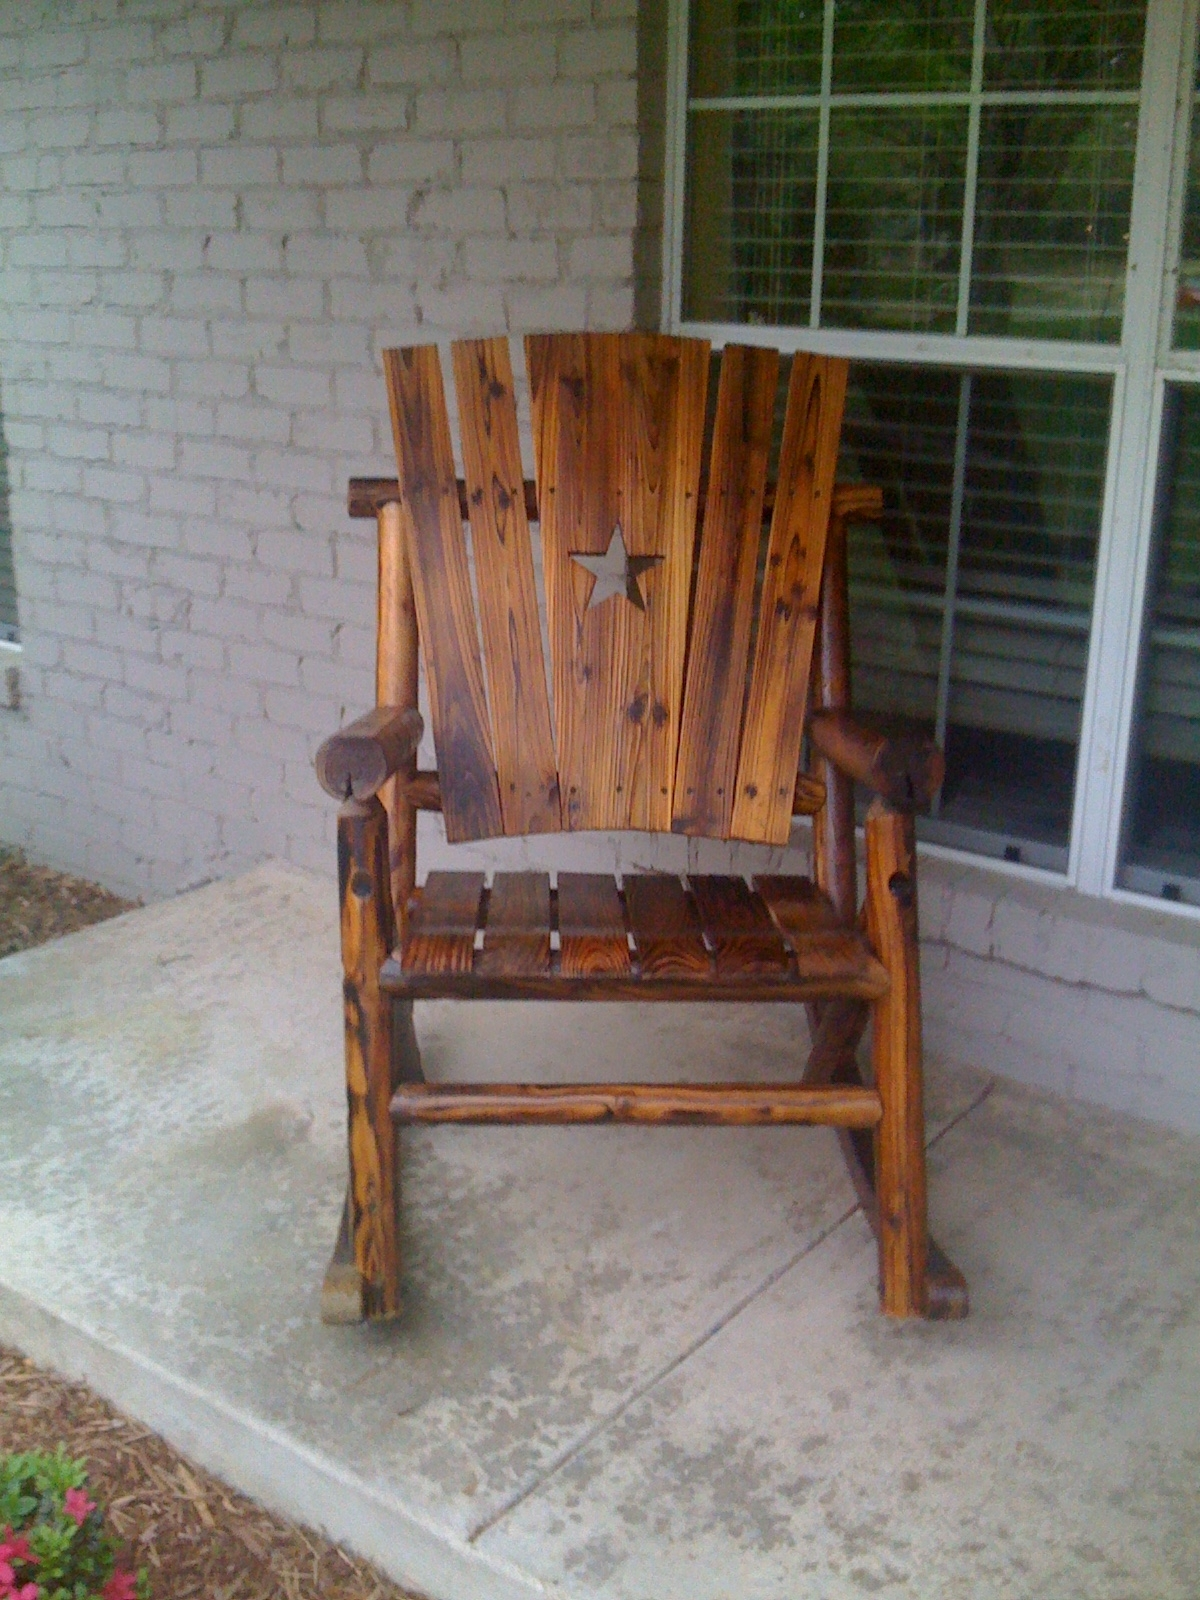 Fashionable Rocking Chair Outdoor Wooden Throughout Outdoor Wooden Rocking Chairs Models : Pleasure Outdoor Wooden (View 4 of 20)